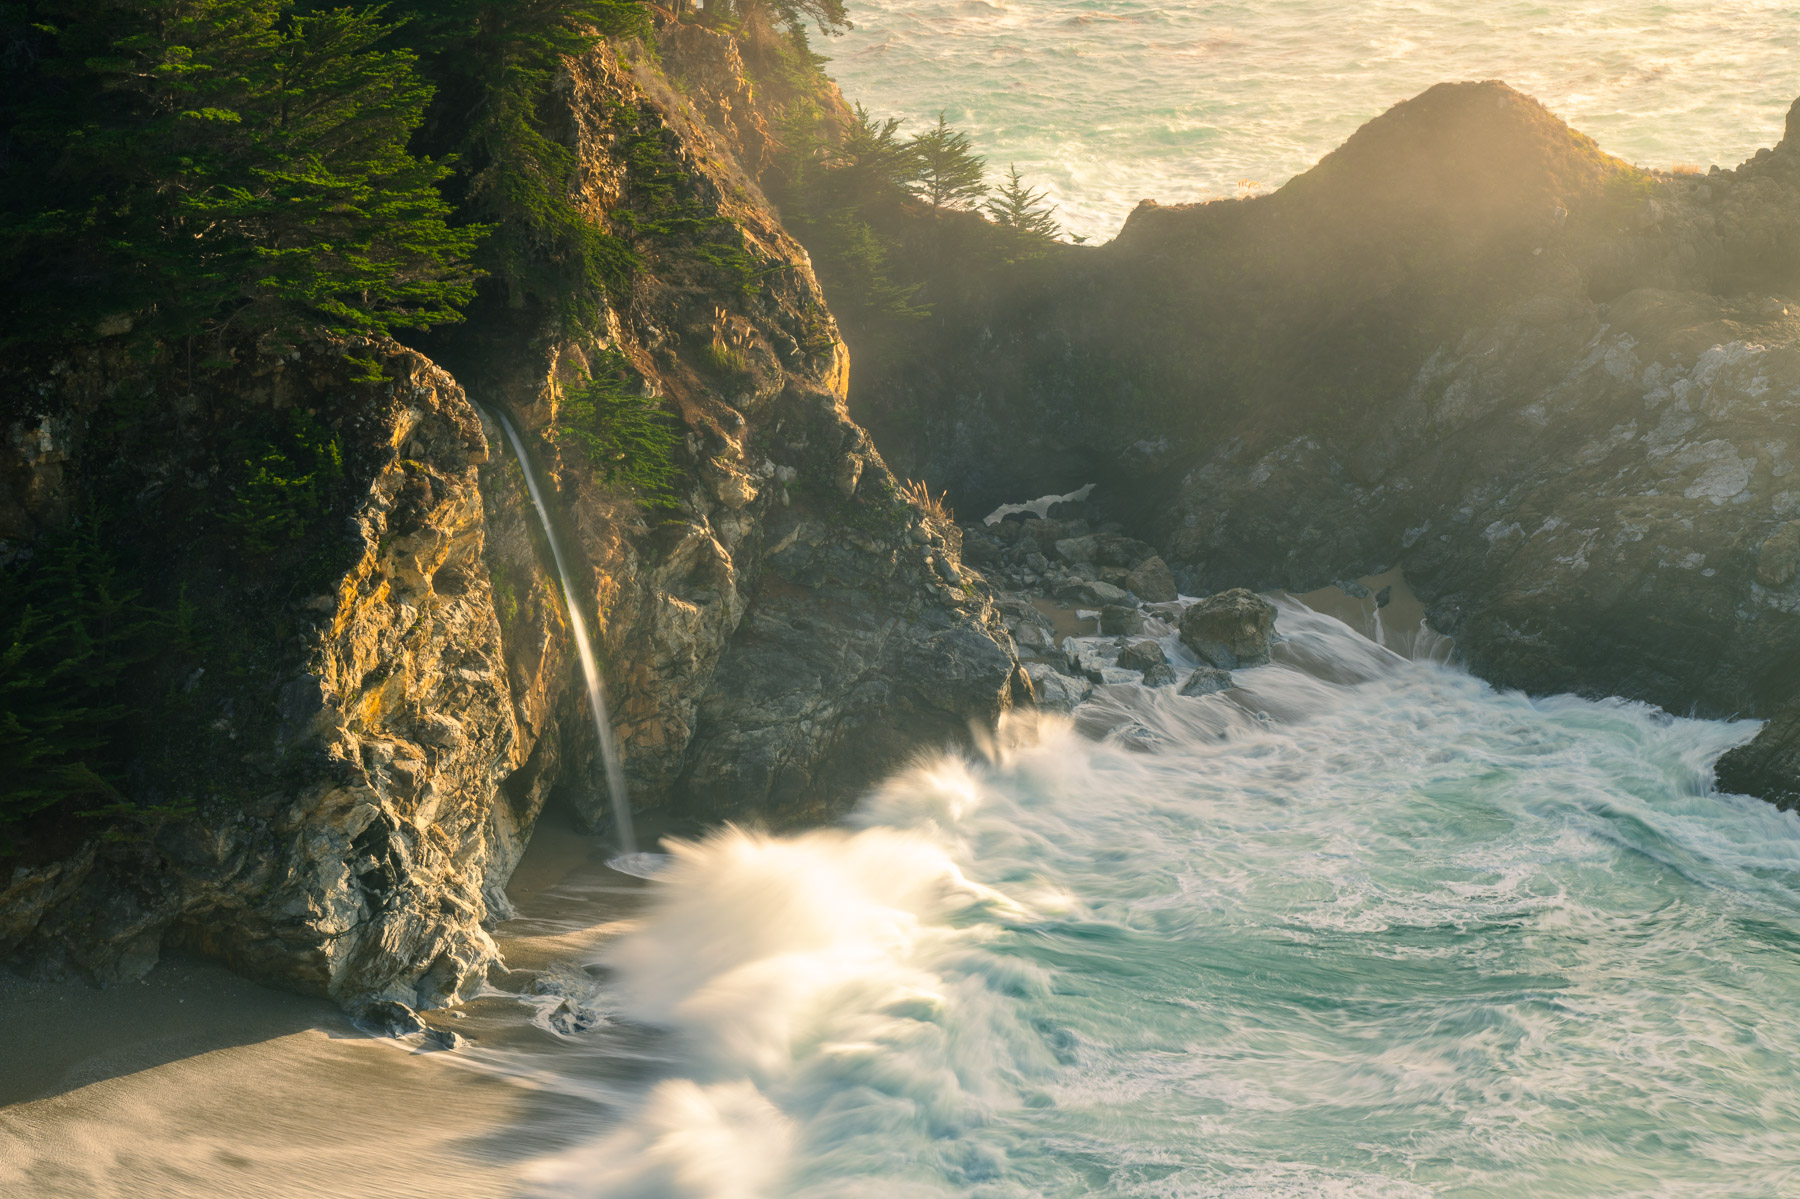 McWay Falls is most likely the most famous waterfall on the coast of California. Captured near susnet ona misty winter afternoon...